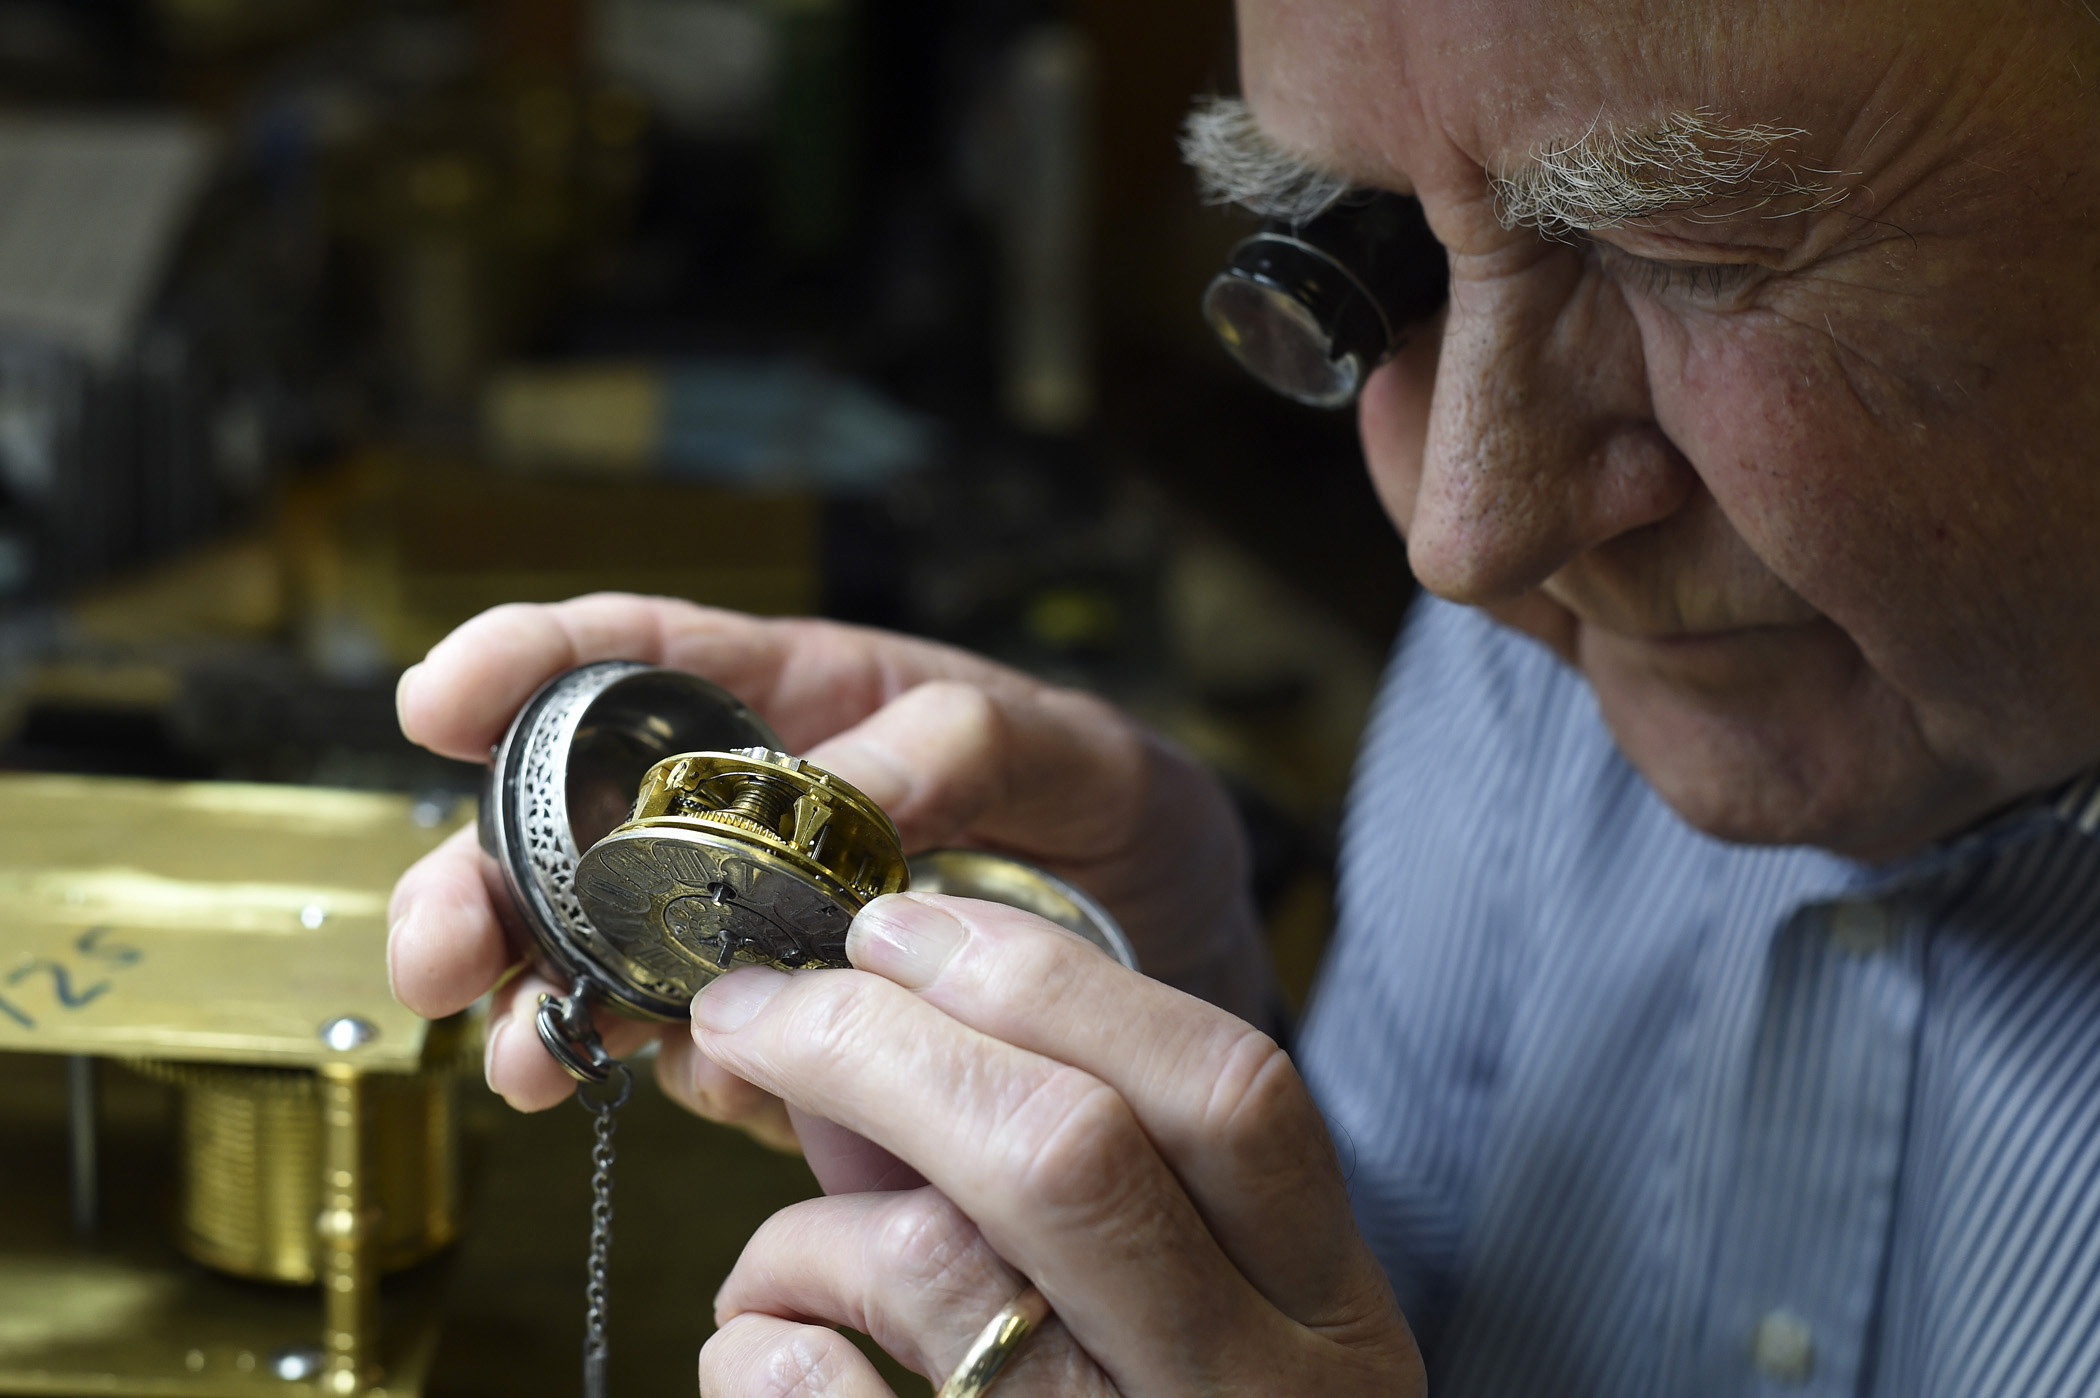 "Ray Bates, ""The British Clockmaker"" looks inside a watch at his workshop in Newfane, Vt. on September 10, 2014. Bates has been repairing and building clocks in his workshop for 50 years."